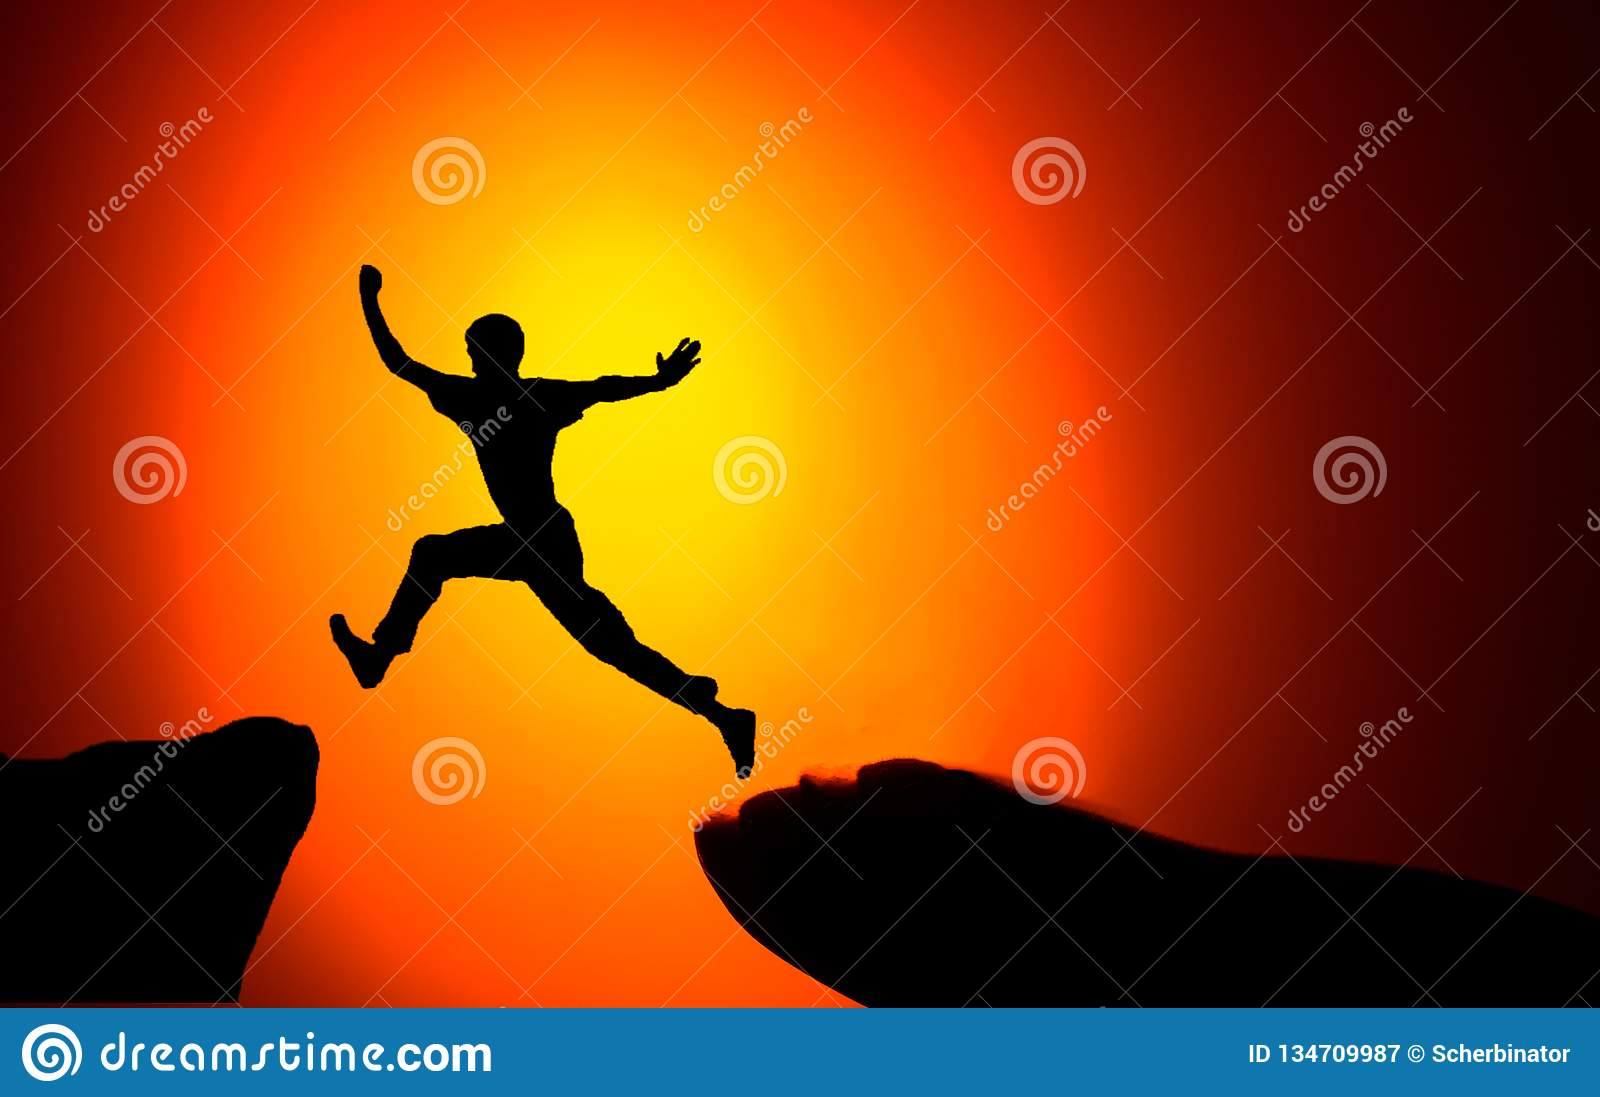 Man jumping across the gap from one rock to cling to the other. Man jumping over rocks with gap on sunset fiery background.